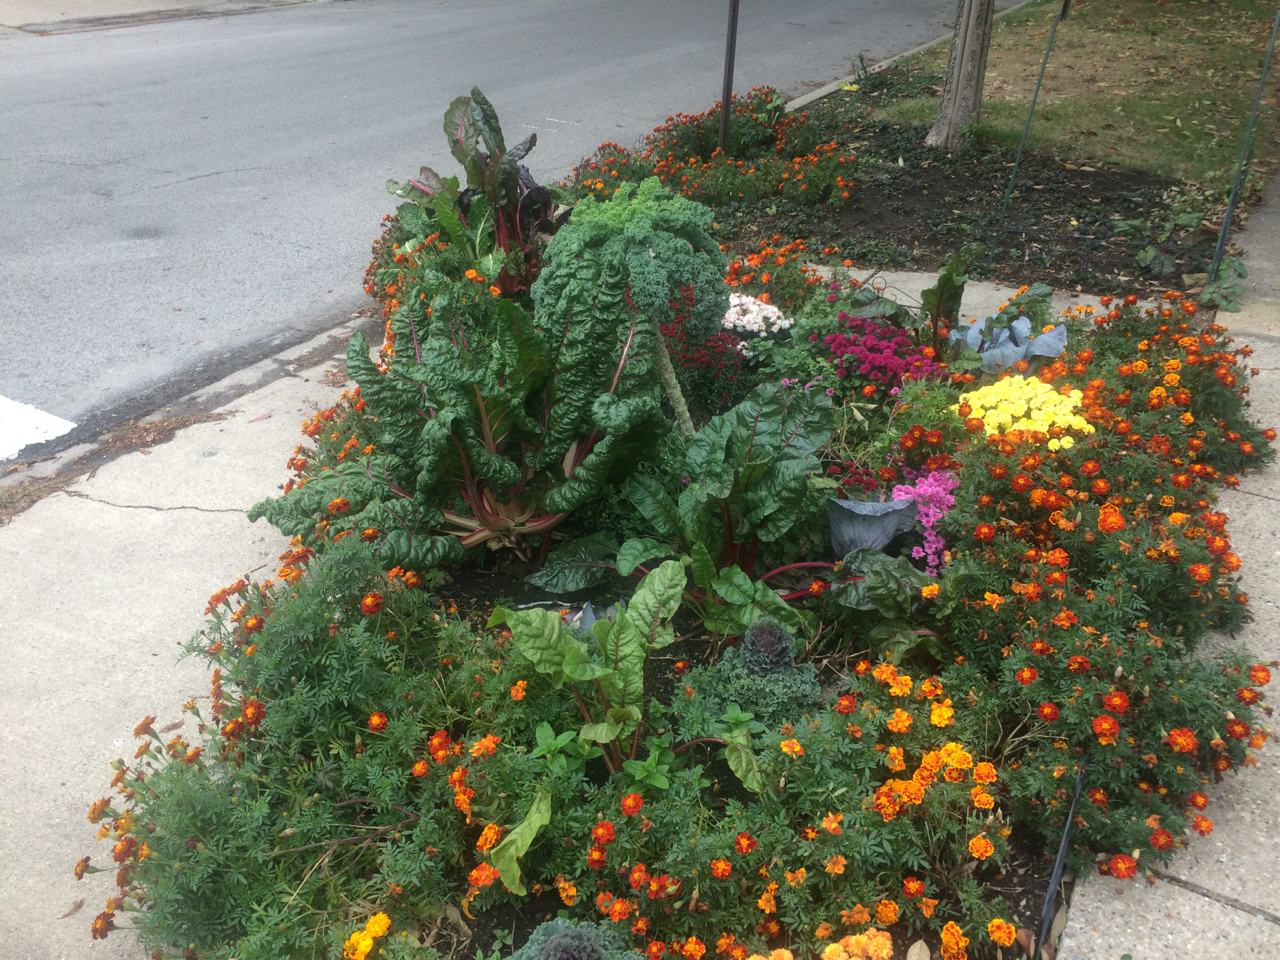 Did your landscape beautify the area, provide cutflowers, or fulfill whatever purpose you wanted?